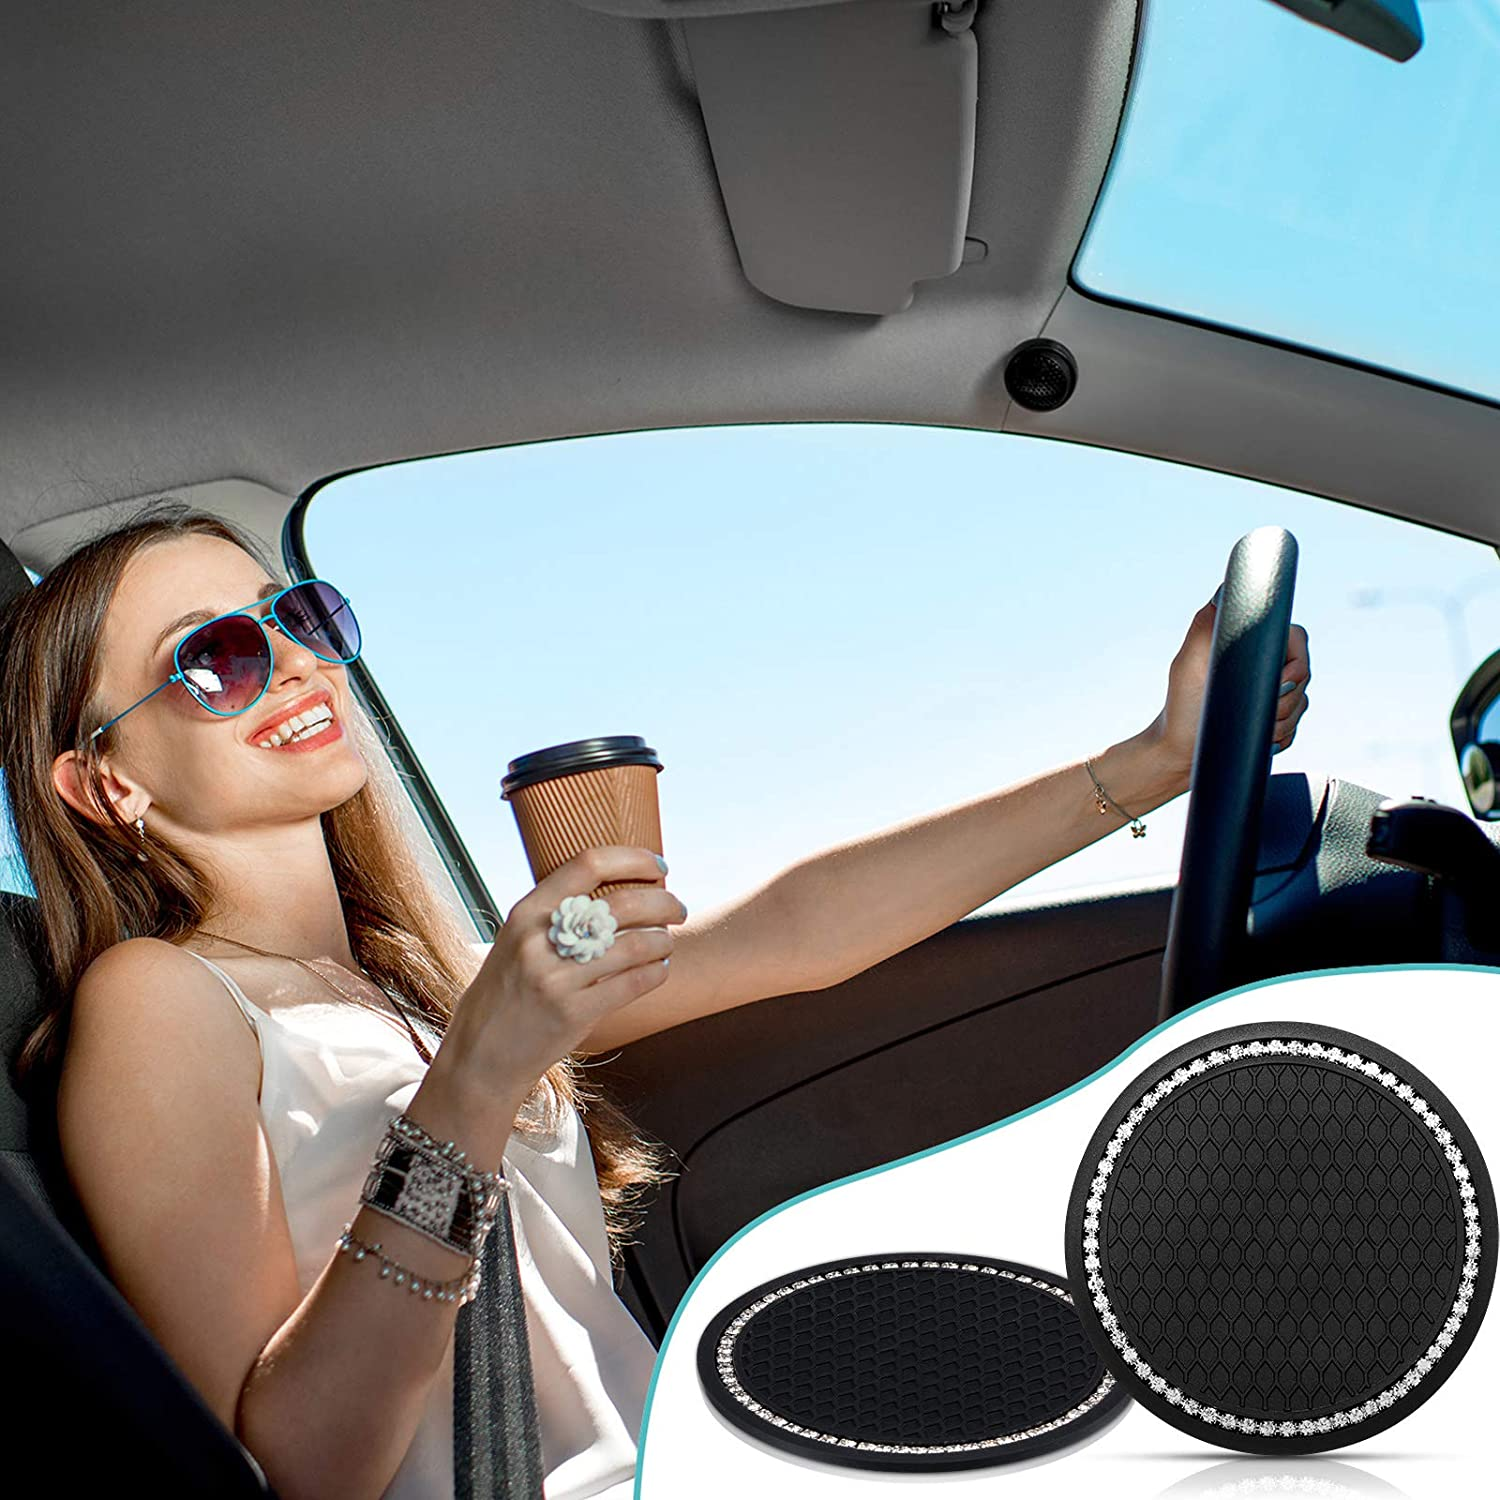 Trucks RVs and More Frienda 4 Pieces Car Coasters Rhinestone Car Cup Holders Silicone Anti Slip Coasters and 2 Pieces Car Bling Emblem Stickers Car Engine Ignition Button Rings for Most Cars